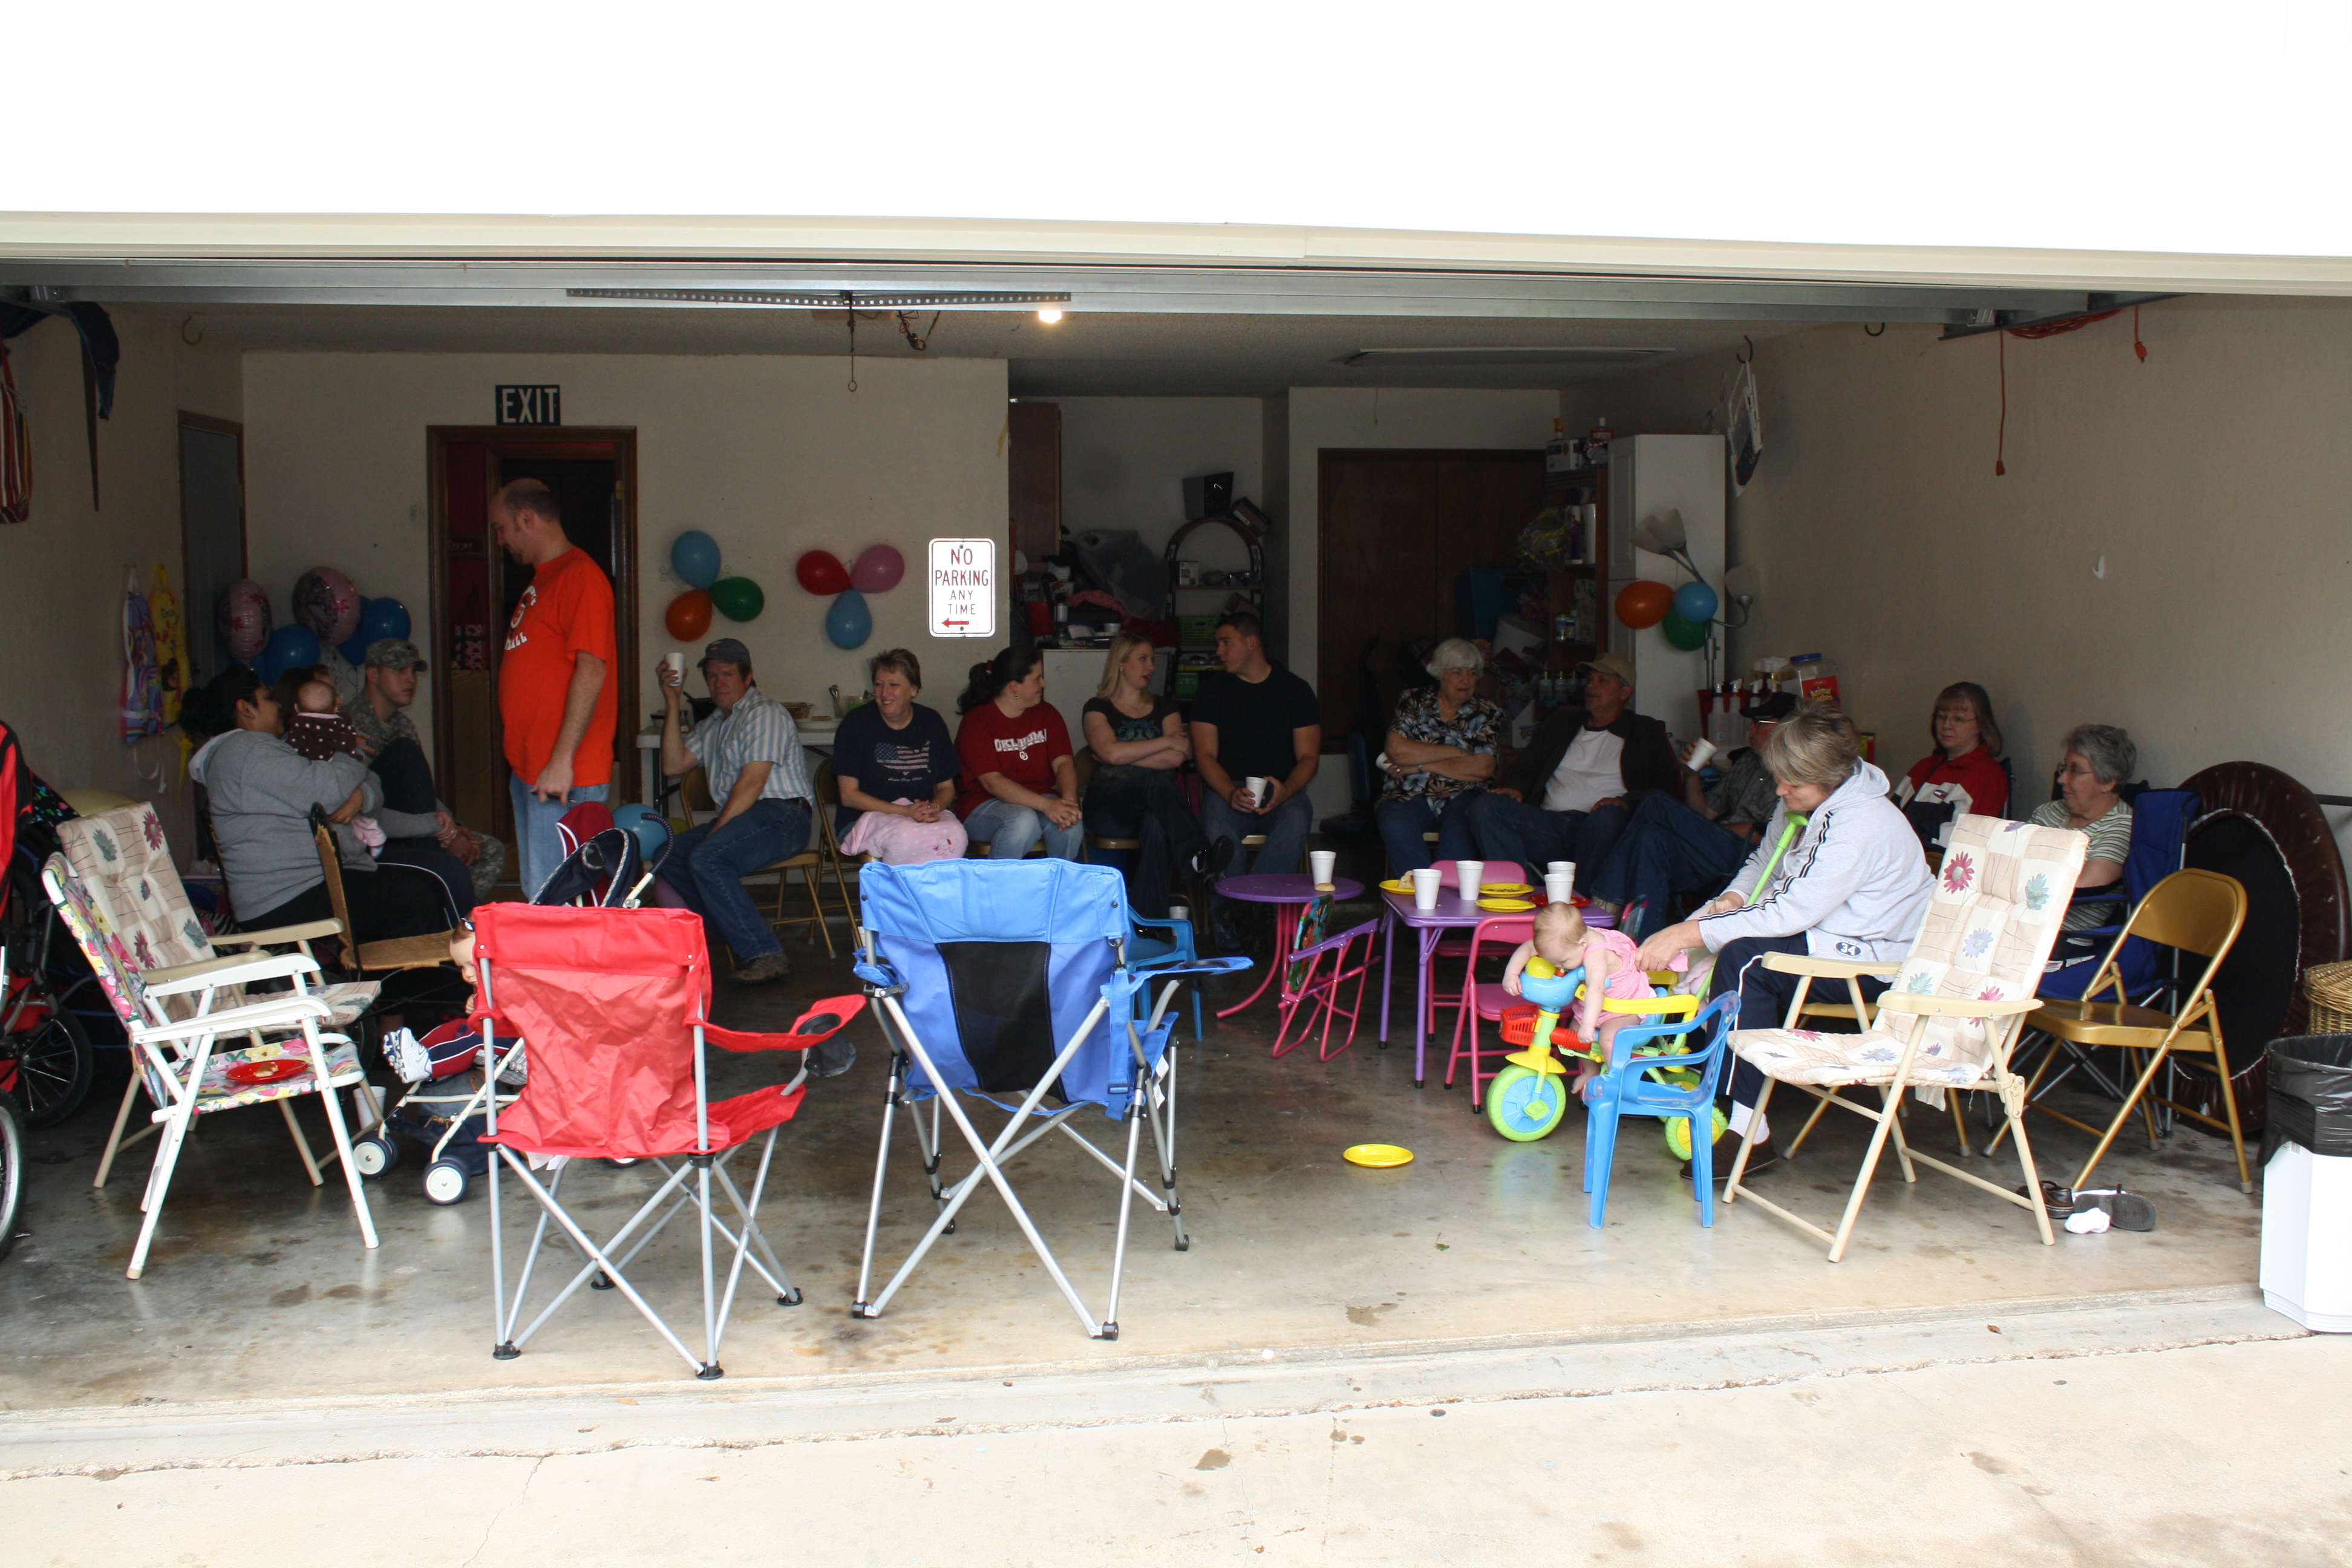 neat garage ideas - A Double Birthday Party